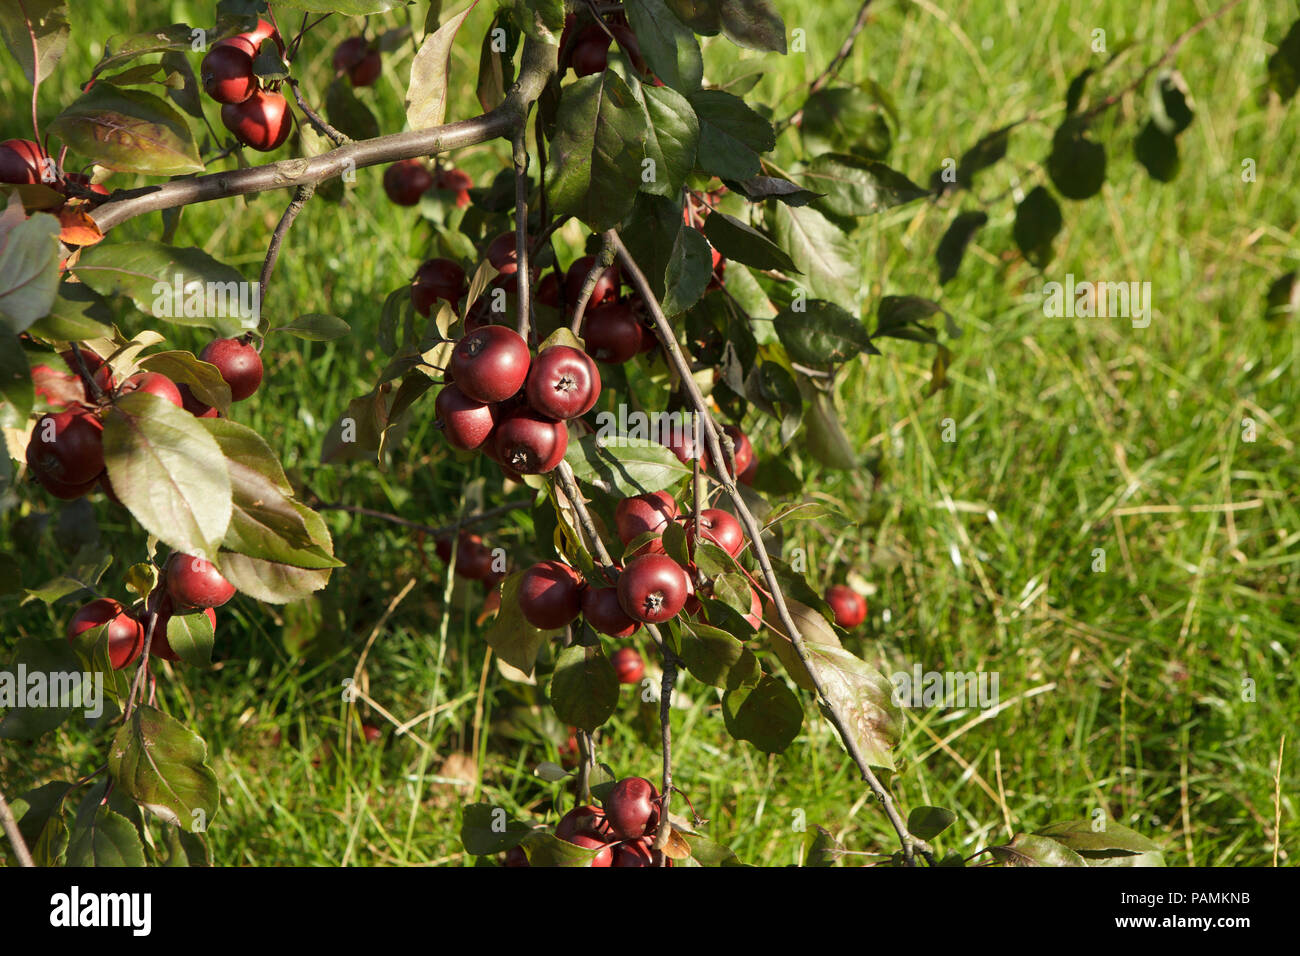 Twig withred wild apples on grass backround - Stock Image